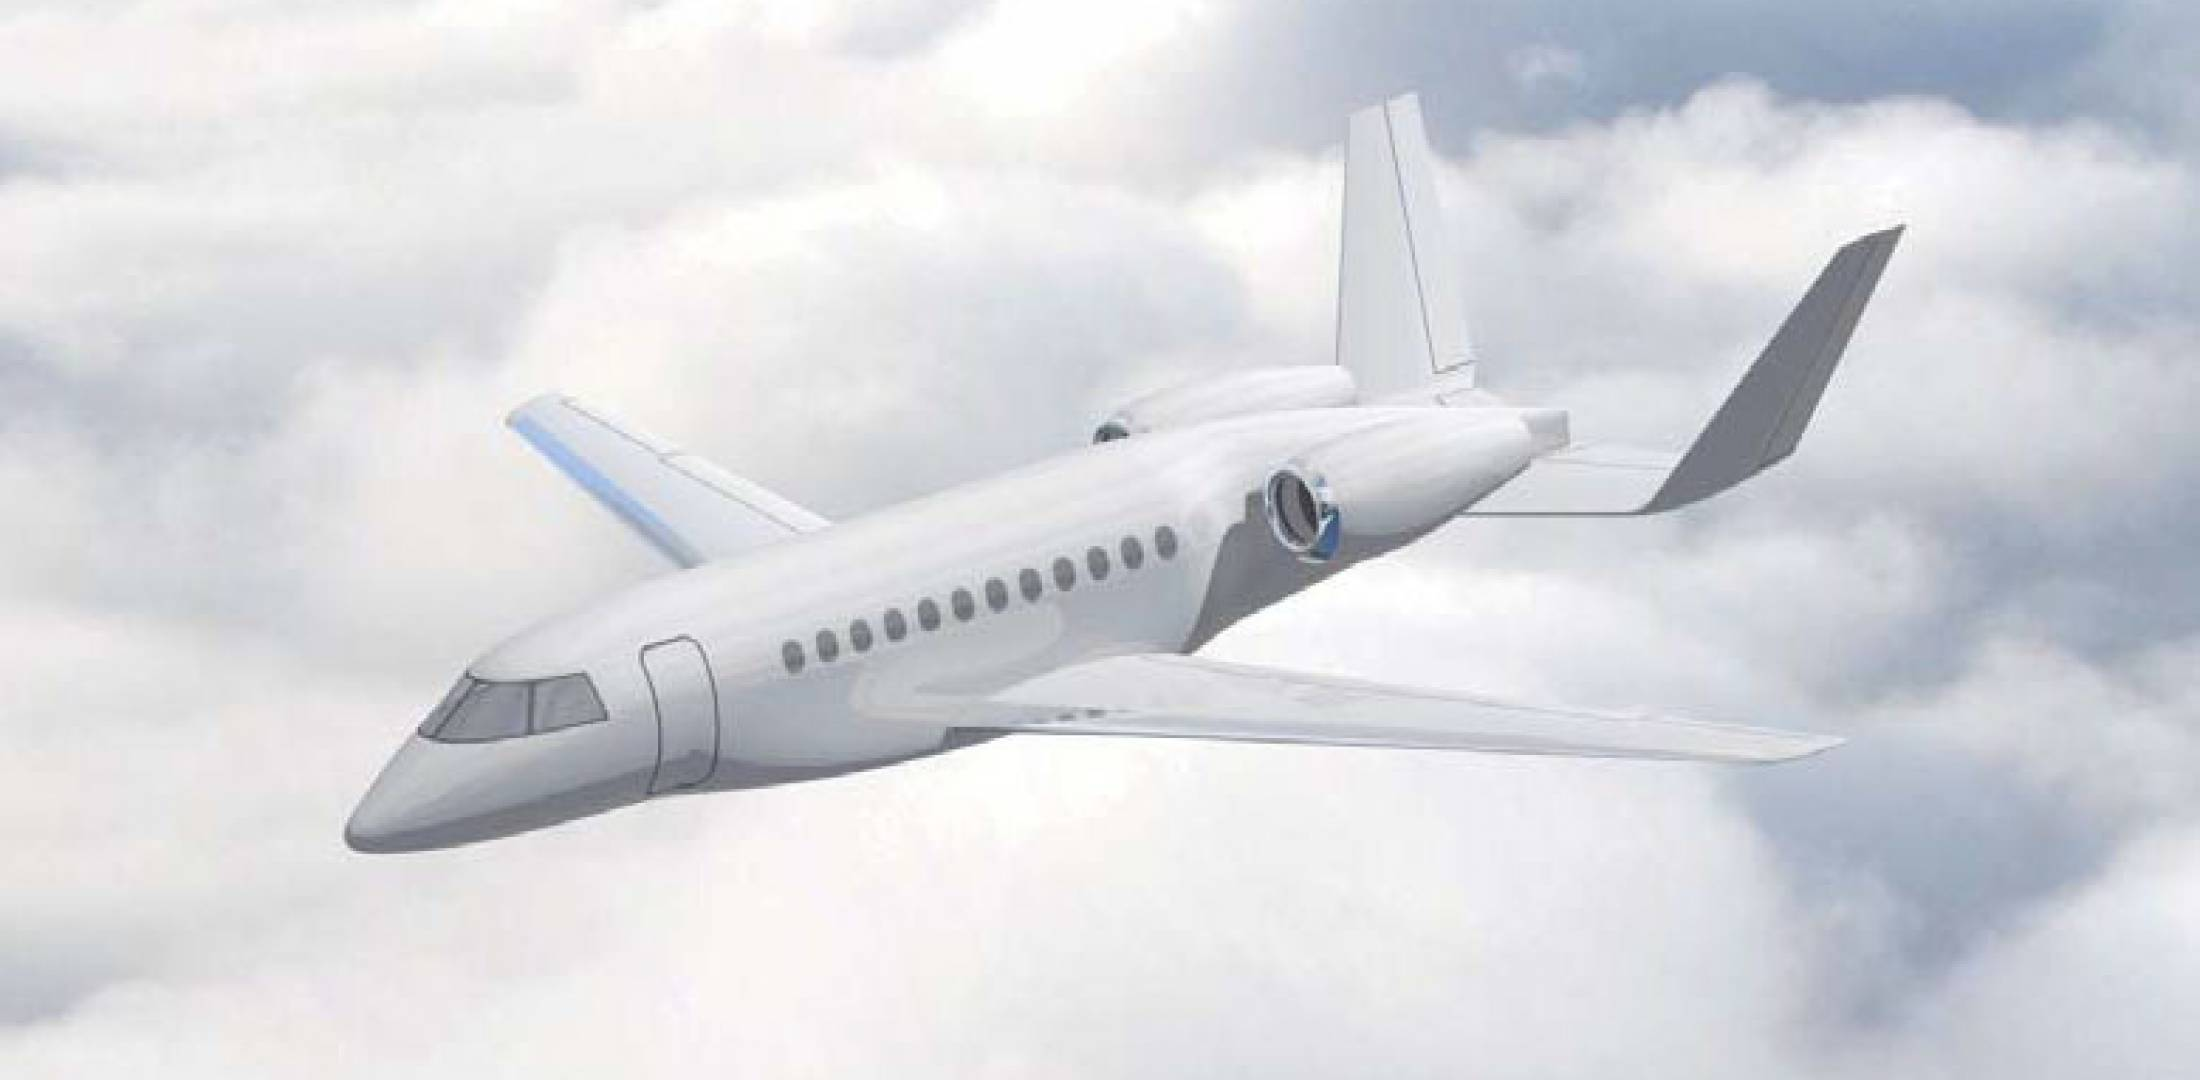 Dassault Studying More Electric Architecture For Future